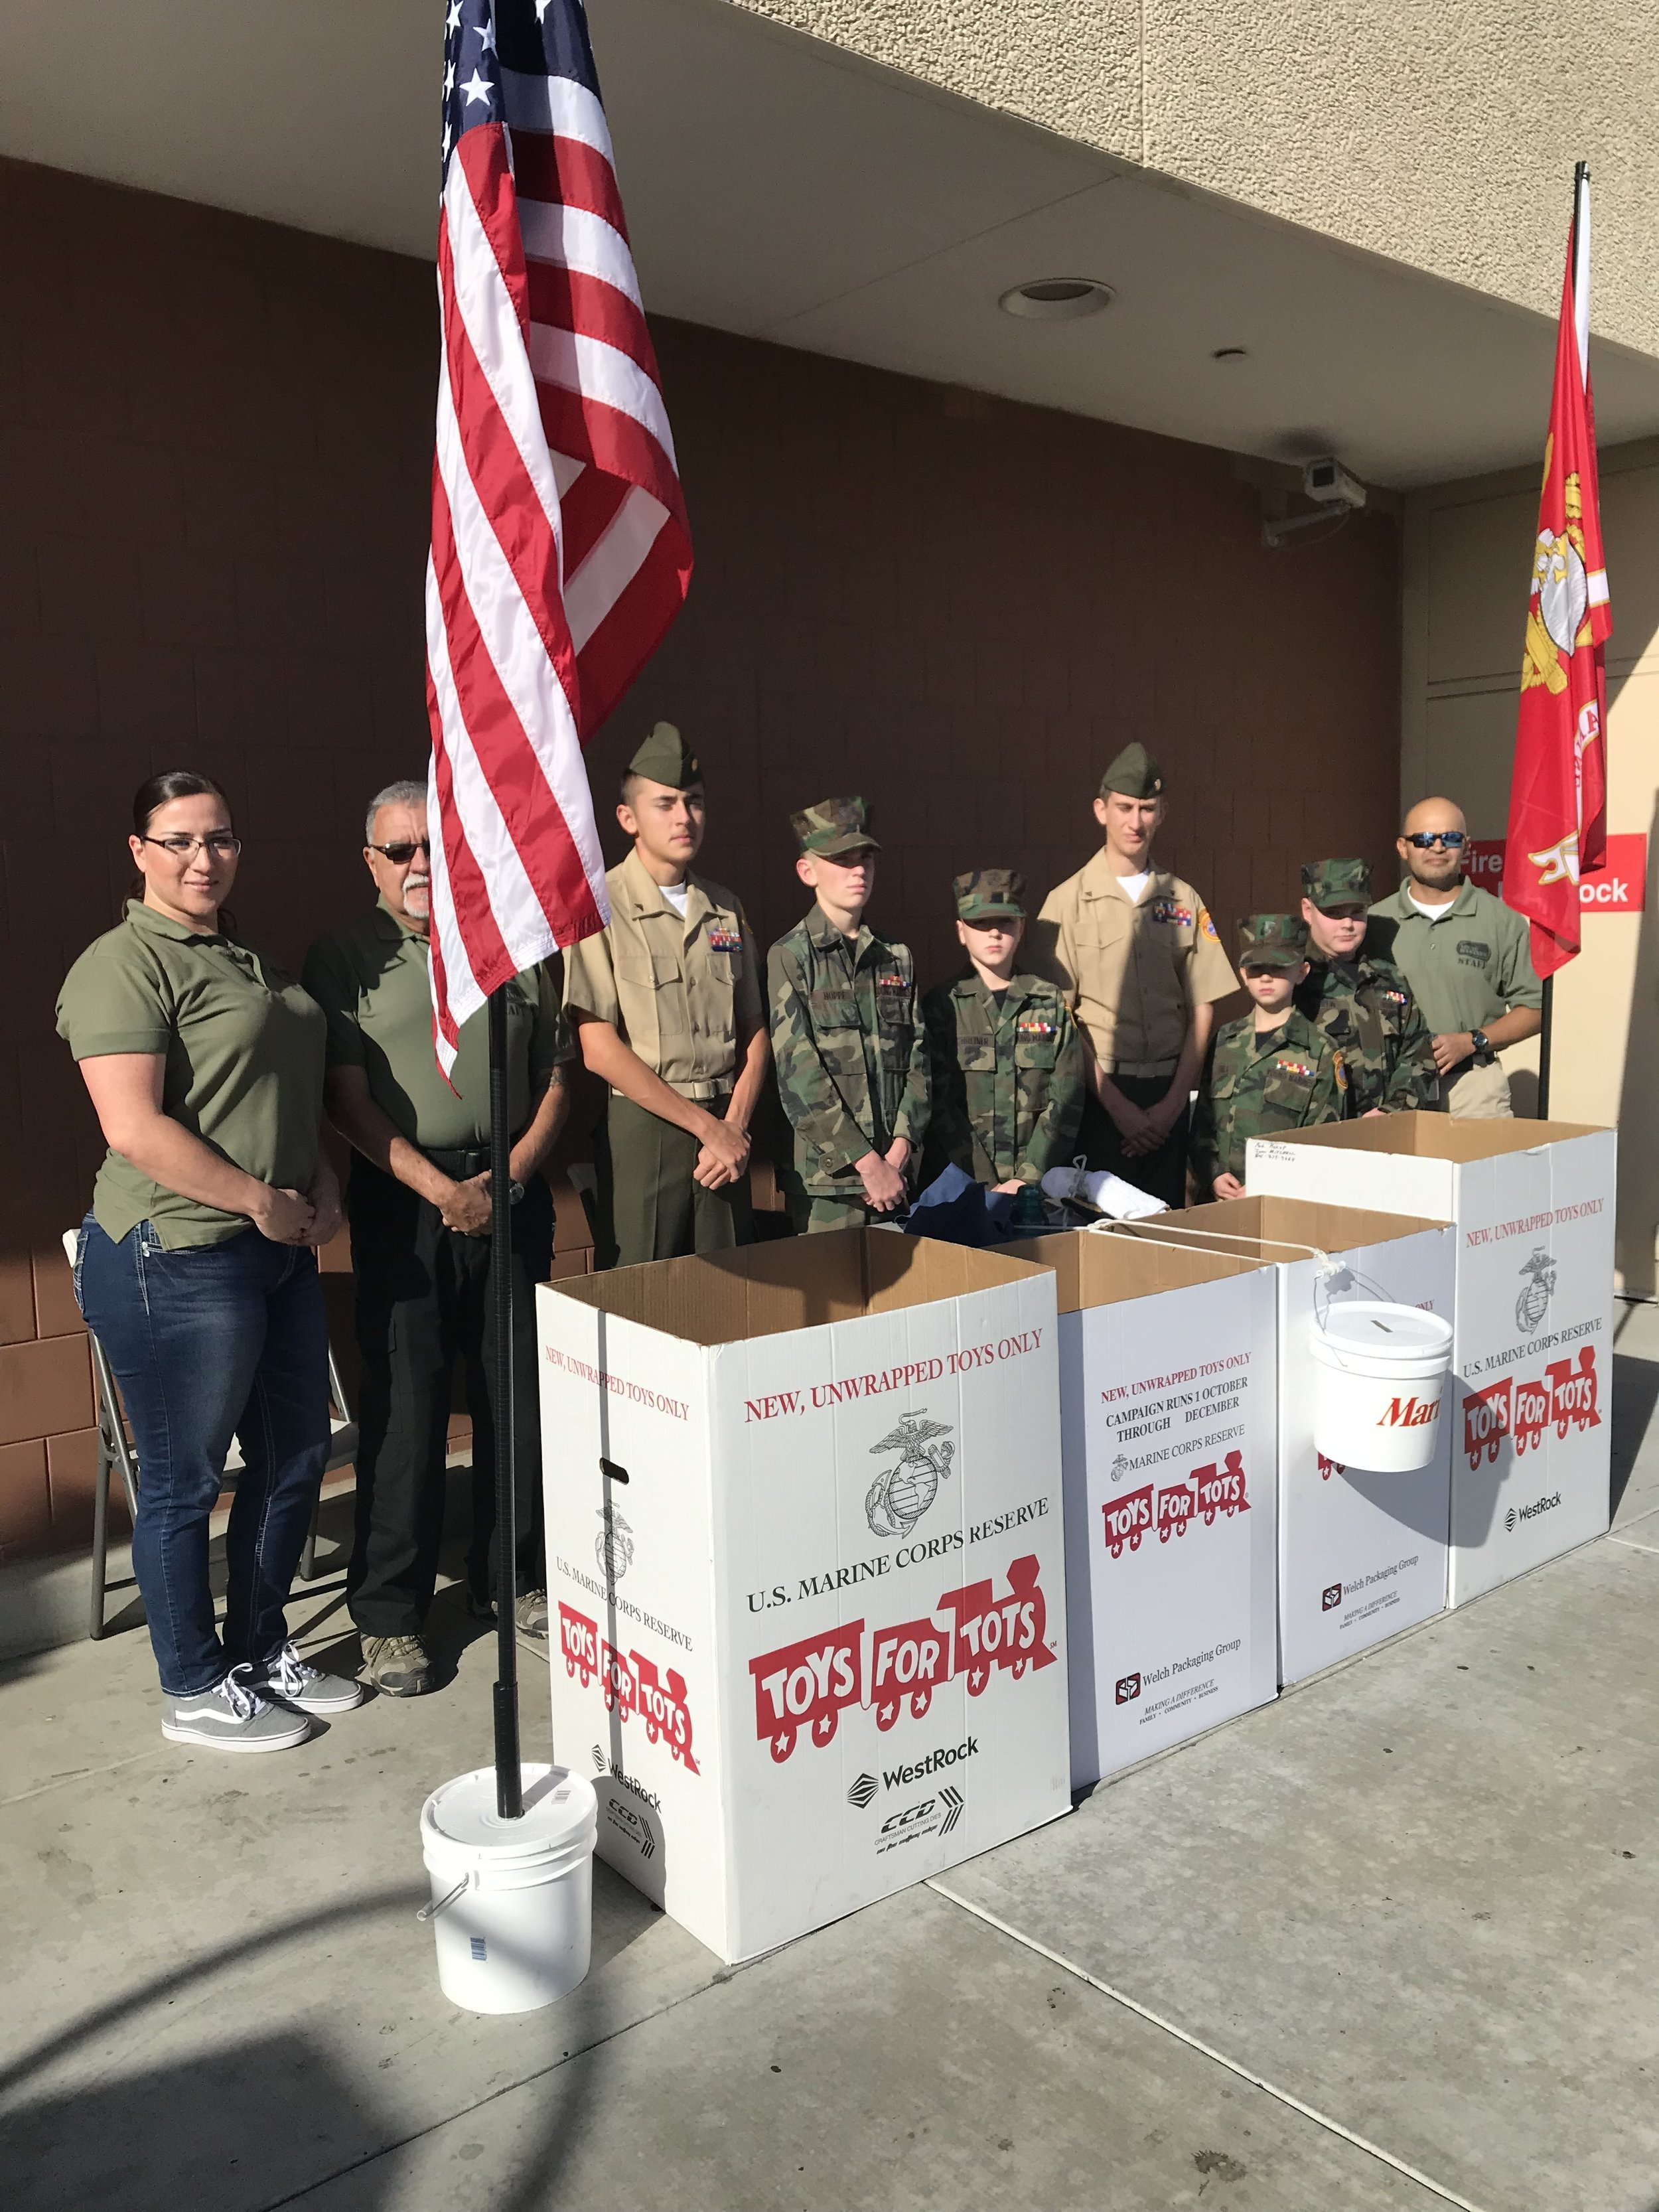 December 23, 2019   The Young Marines from Santa Clarita man the Toys for Tots collection area on Sunday, December 23 at the Target Store in Simi Valley.